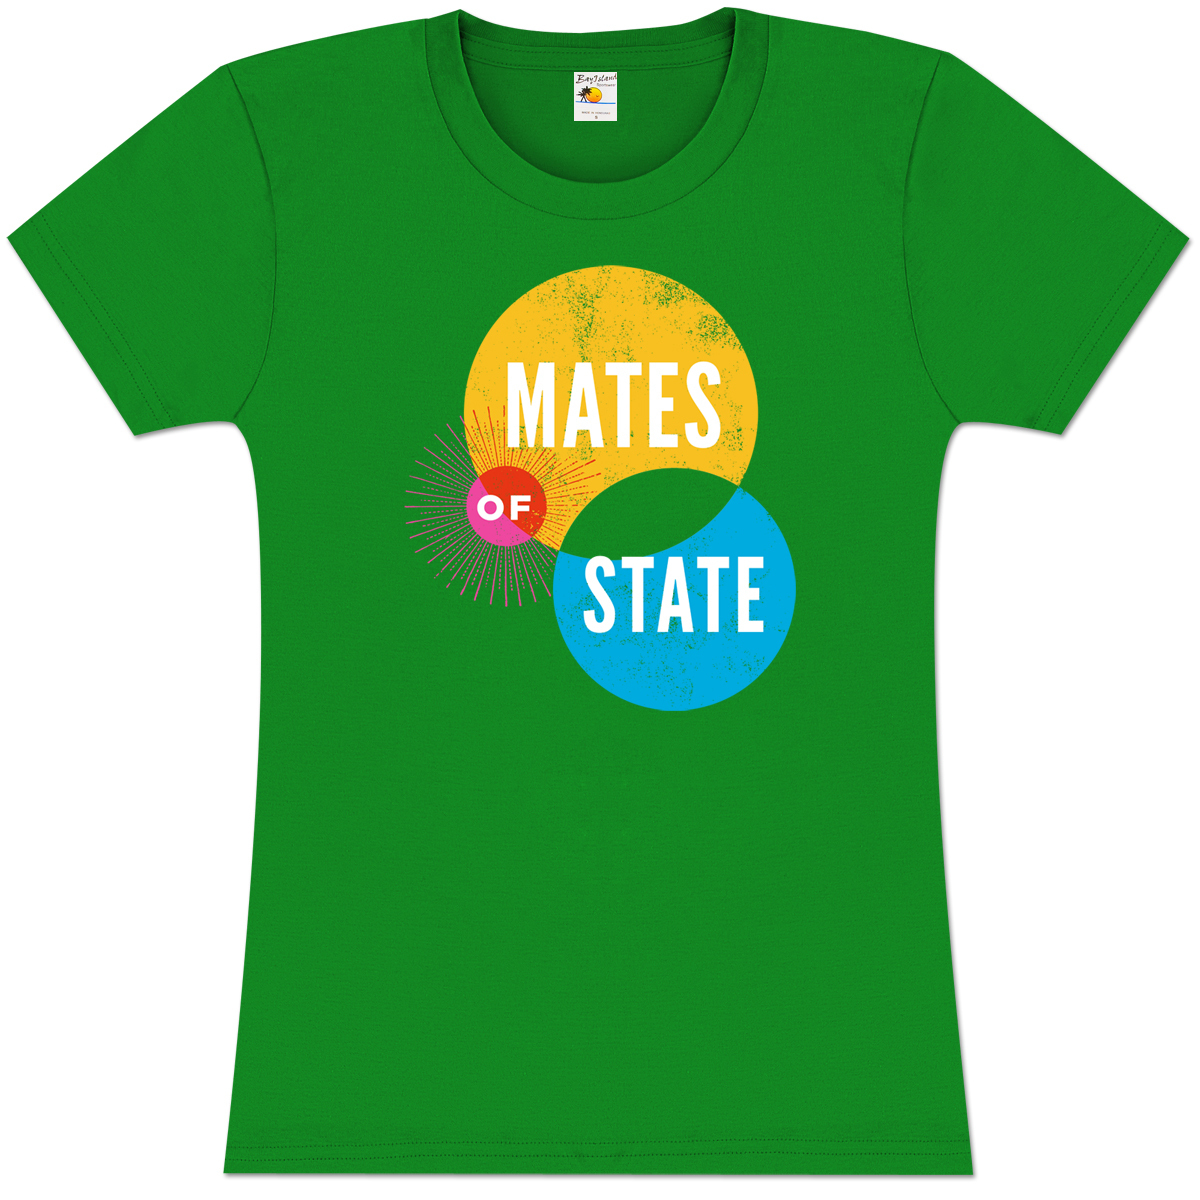 Mates of State Women's Circles T-Shirt